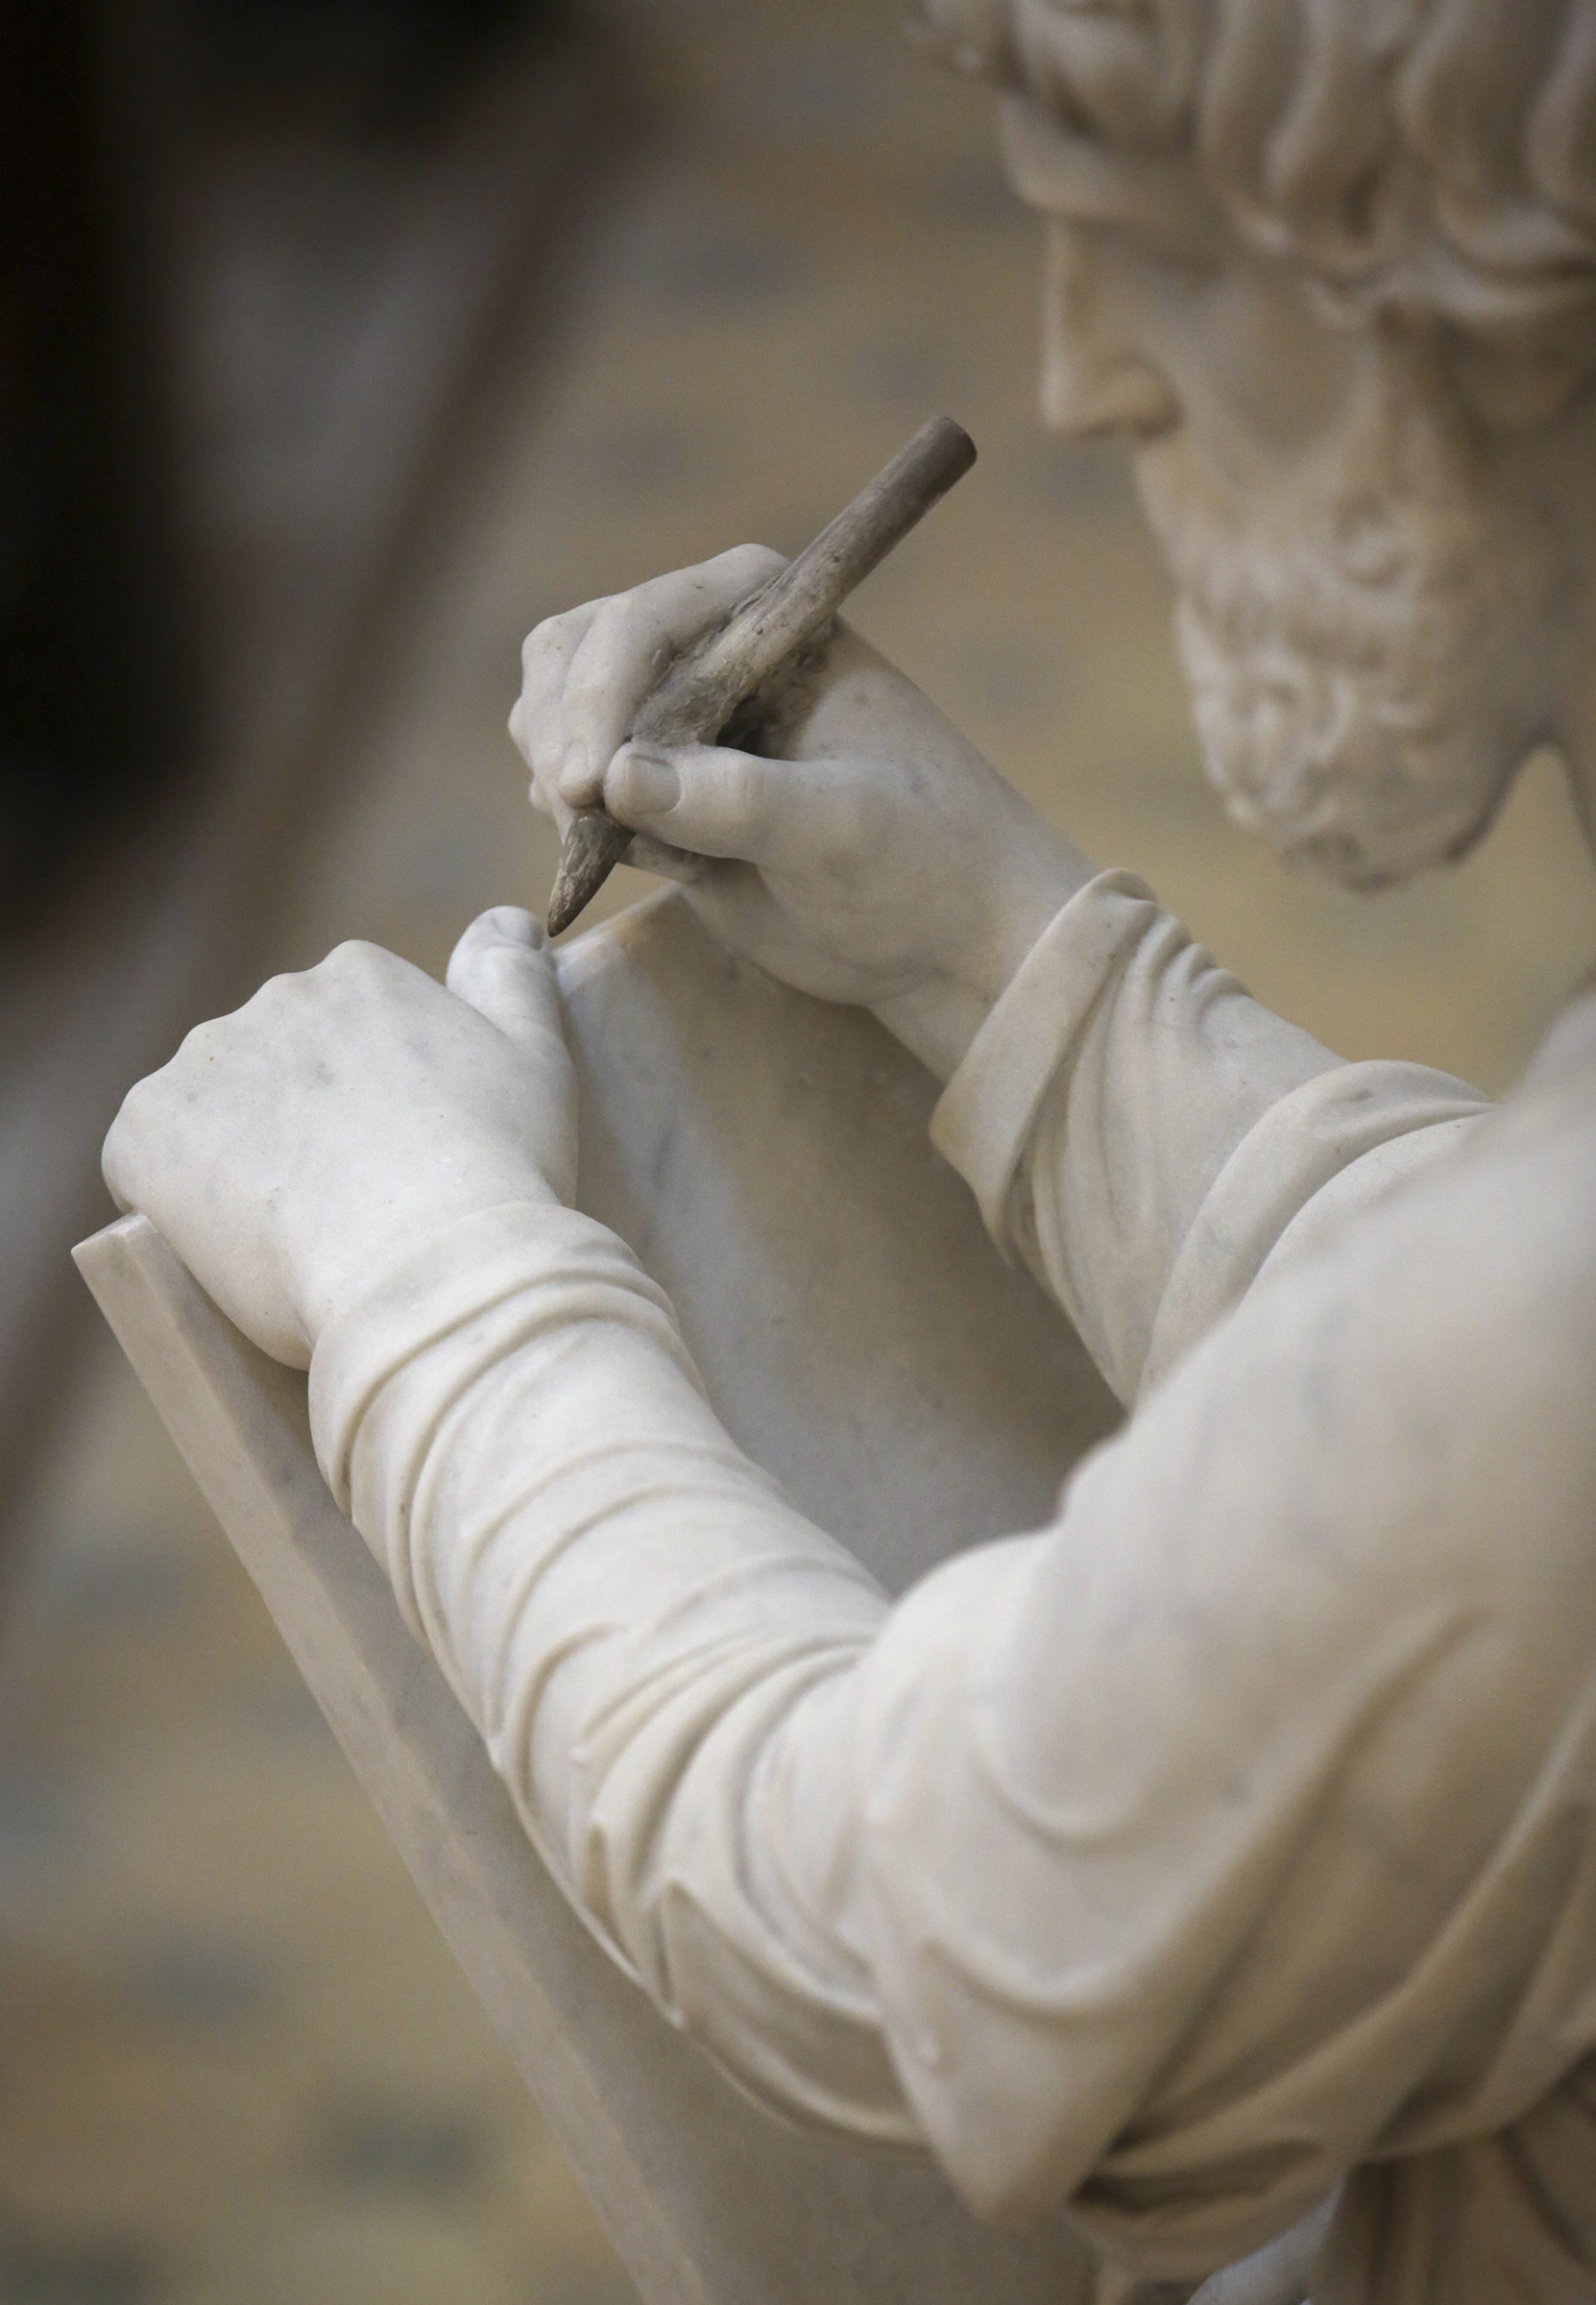 Bertel Thorvaldsen's statue of Matthew, one of the 12 apostles, holds a tablet at the Church of Our Lady in Copenhagen, Denmark, on Tuesday, Nov. 13, 2018. The 12 apostles statues were carved out of Carrara marble between 1829 and 1848. Replicas of the statues are now on display in the Rome Temple Visitors' Center in Italy.